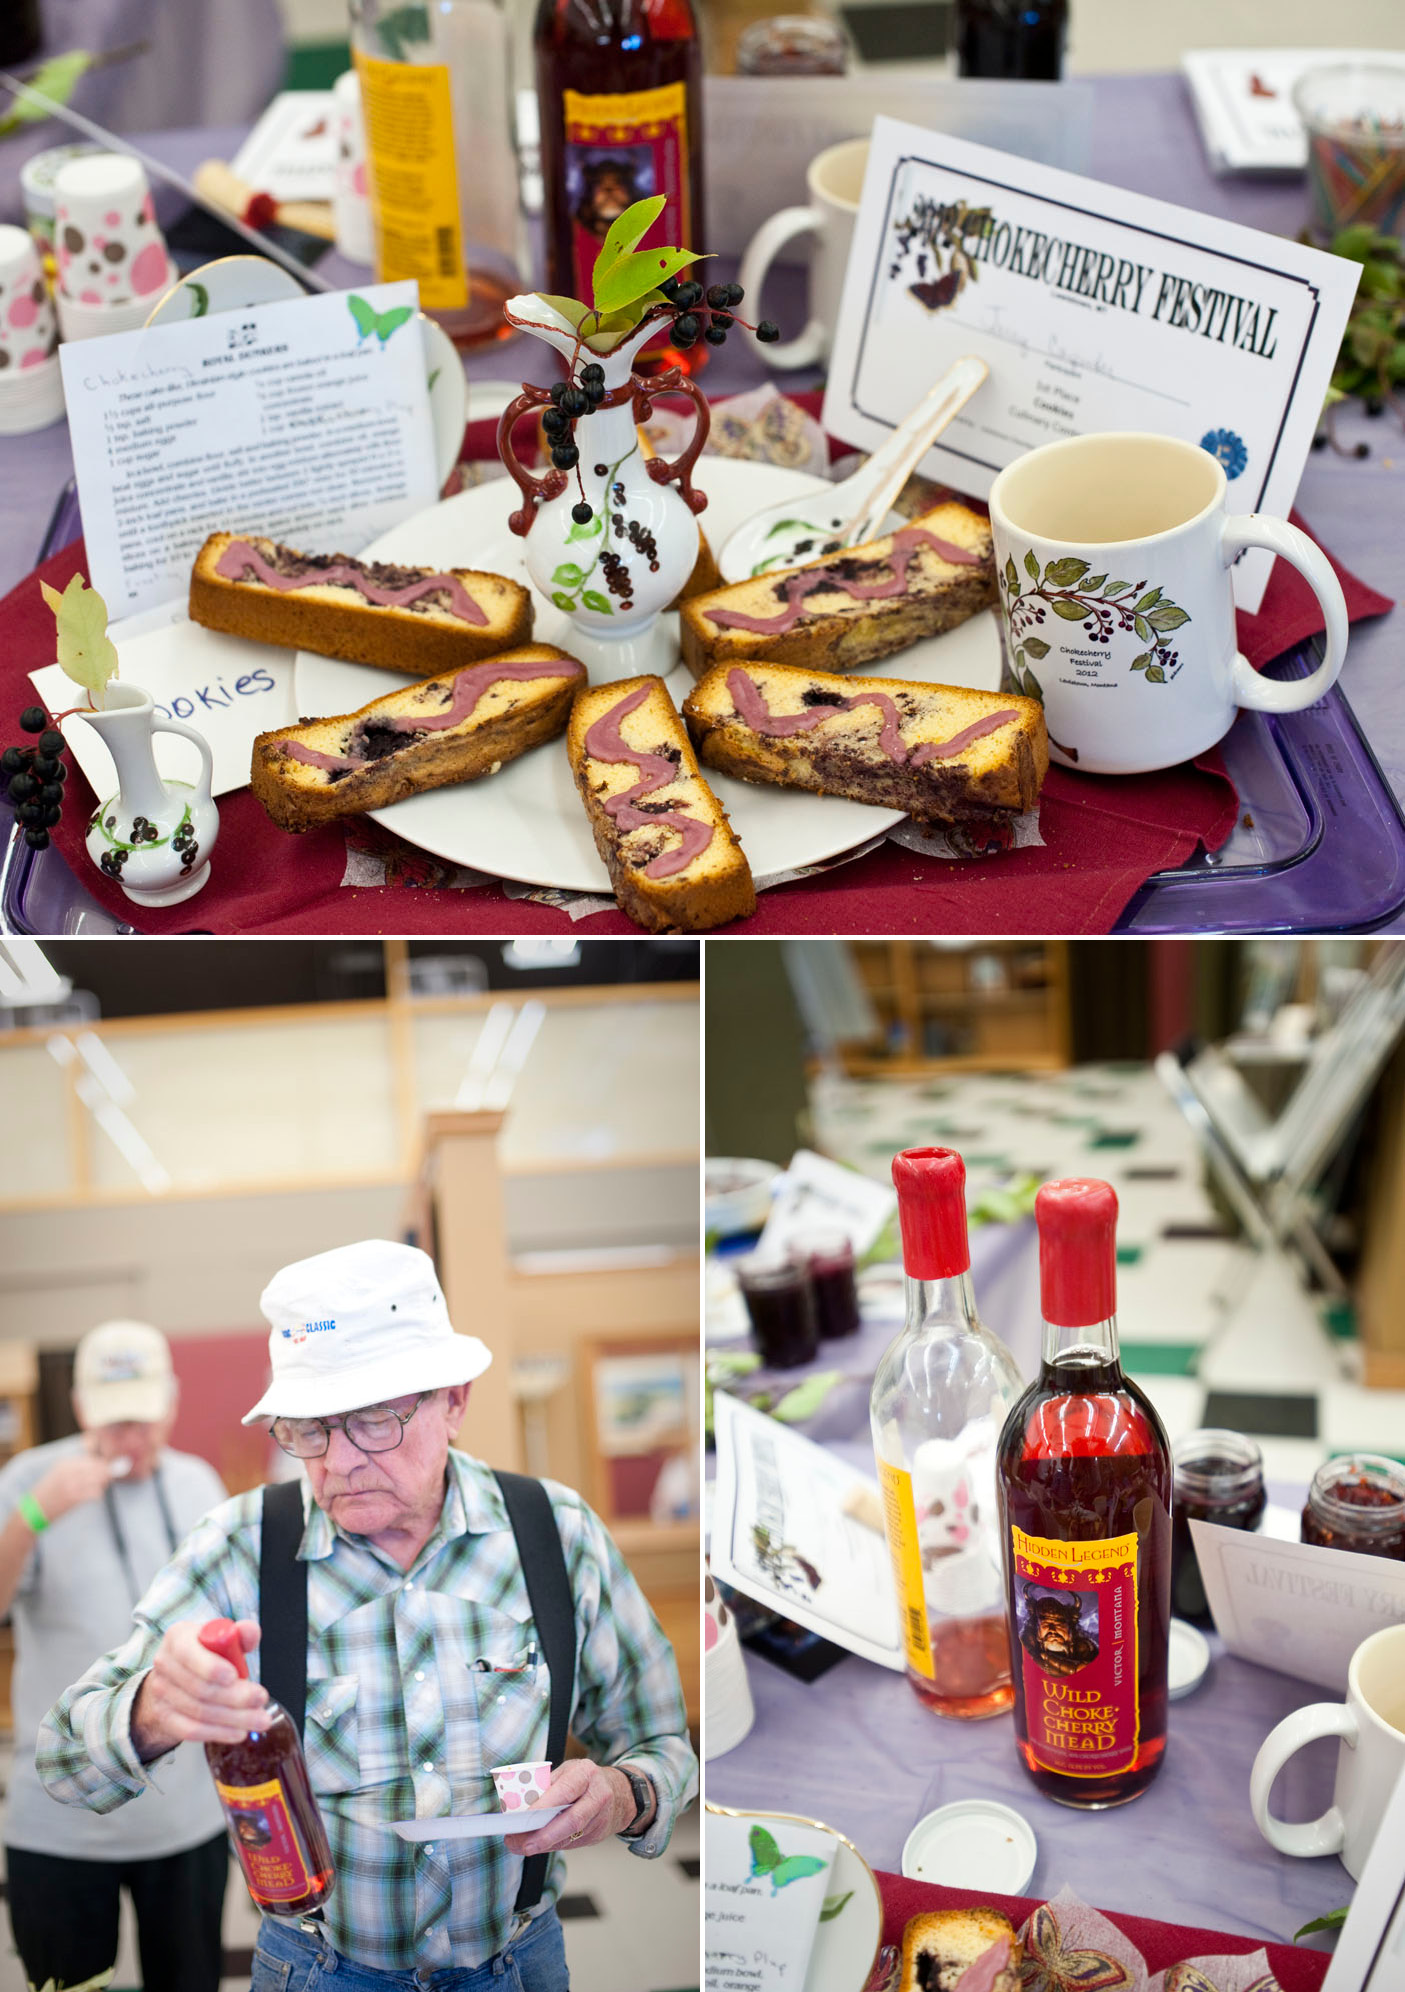 Lewistown Chokecherry Festival on Montana food, travel, & culture blog - The Last Best Plates